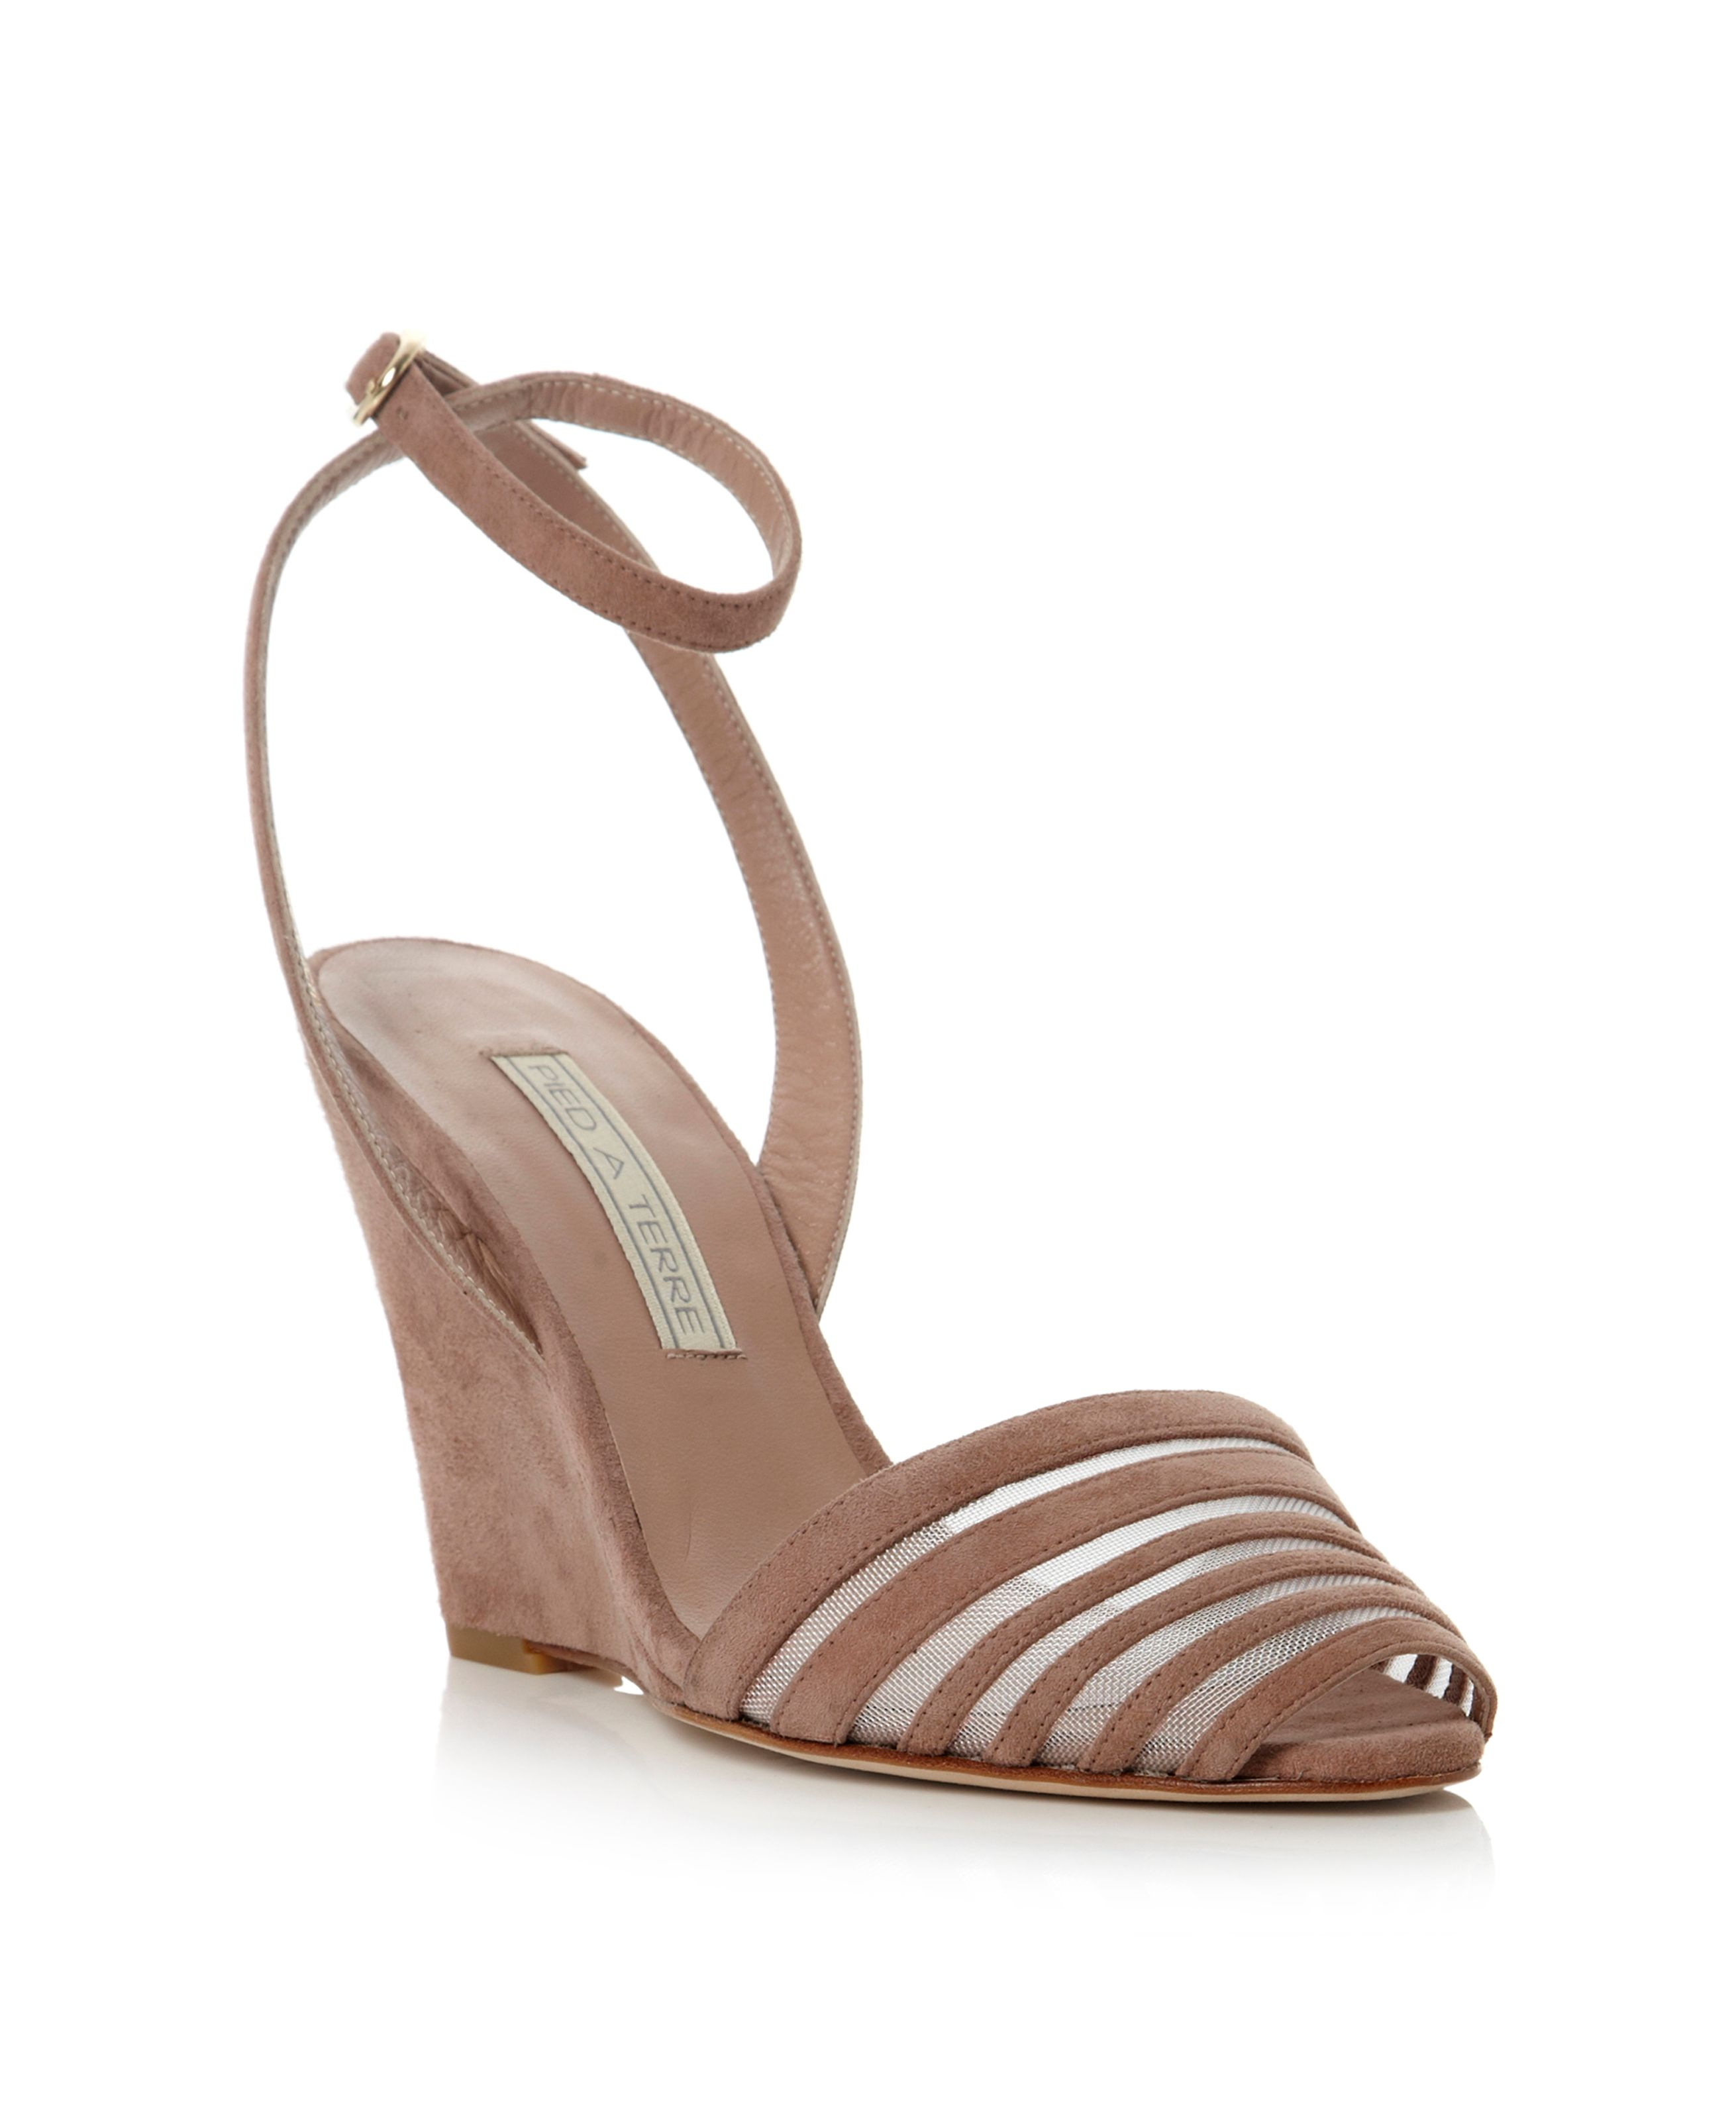 Jaded mix material tie wedge sandals